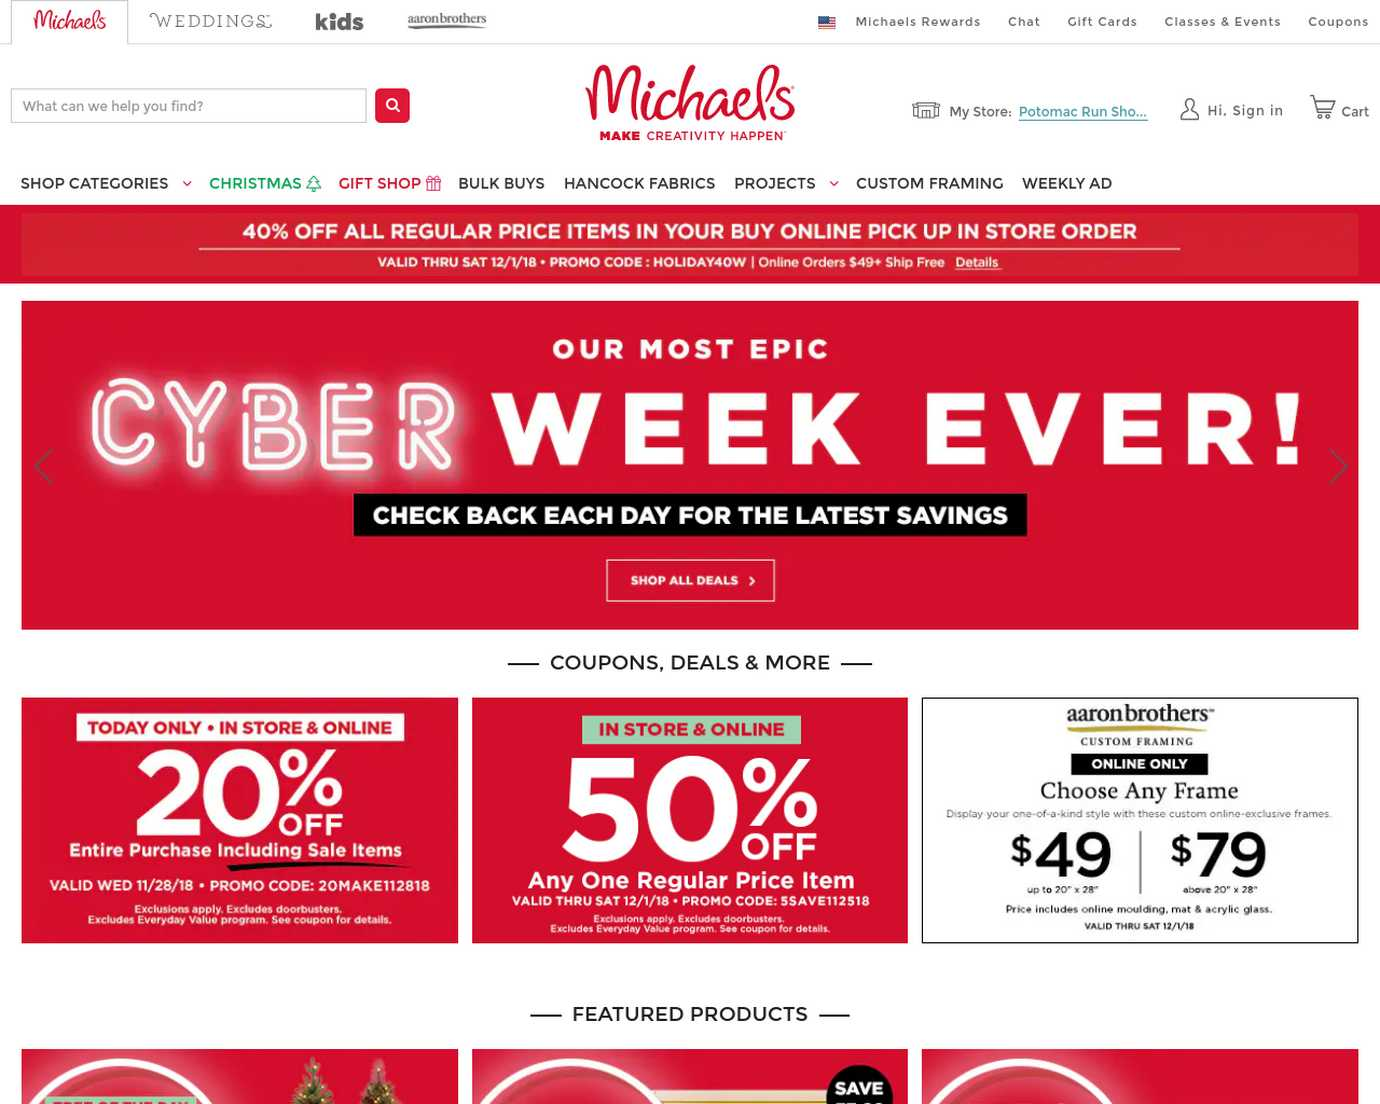 Michaels Coupons New Promo Codes